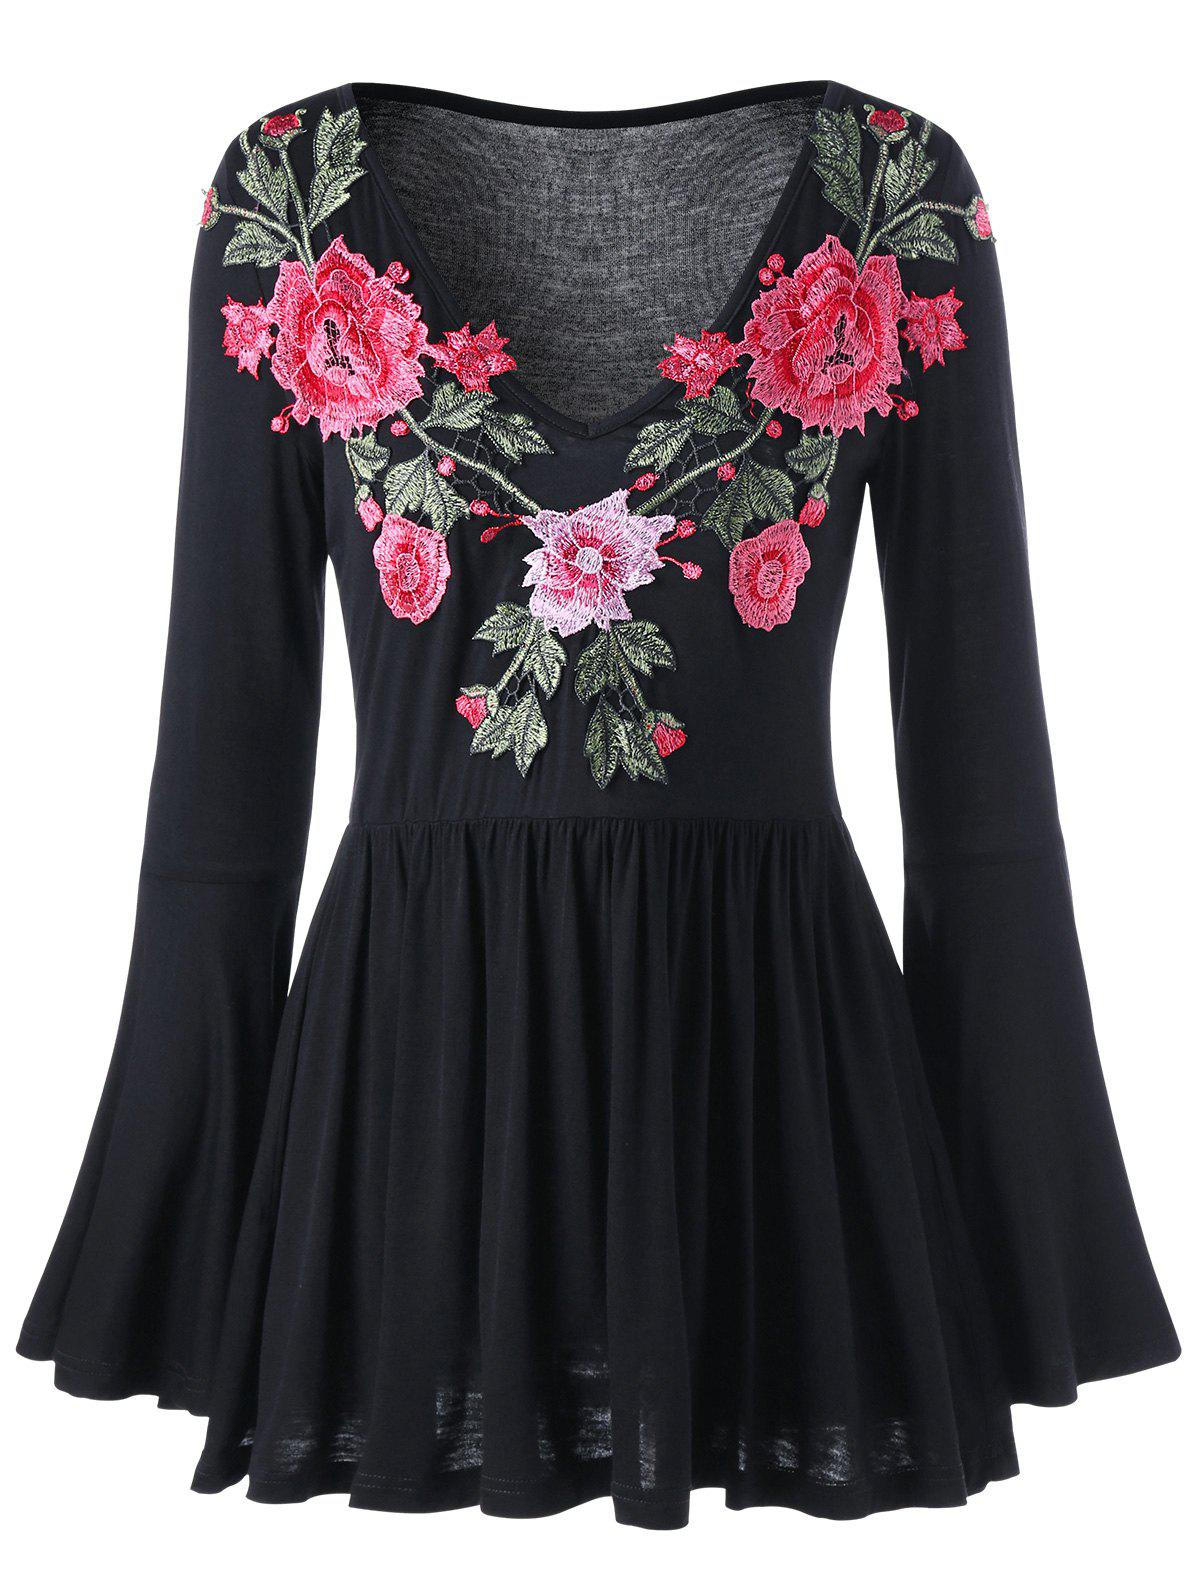 Embroidered Bell Sleeve Peplum BlouseWOMEN<br><br>Size: L; Color: BLACK; Style: Fashion; Material: Polyester,Spandex; Shirt Length: Long; Sleeve Length: Full; Sleeve Type: Flare Sleeve; Collar: V-Neck; Pattern Type: Floral; Embellishment: Embroidery; Season: Fall,Spring; Weight: 0.3000kg; Package Contents: 1 x Blouse;